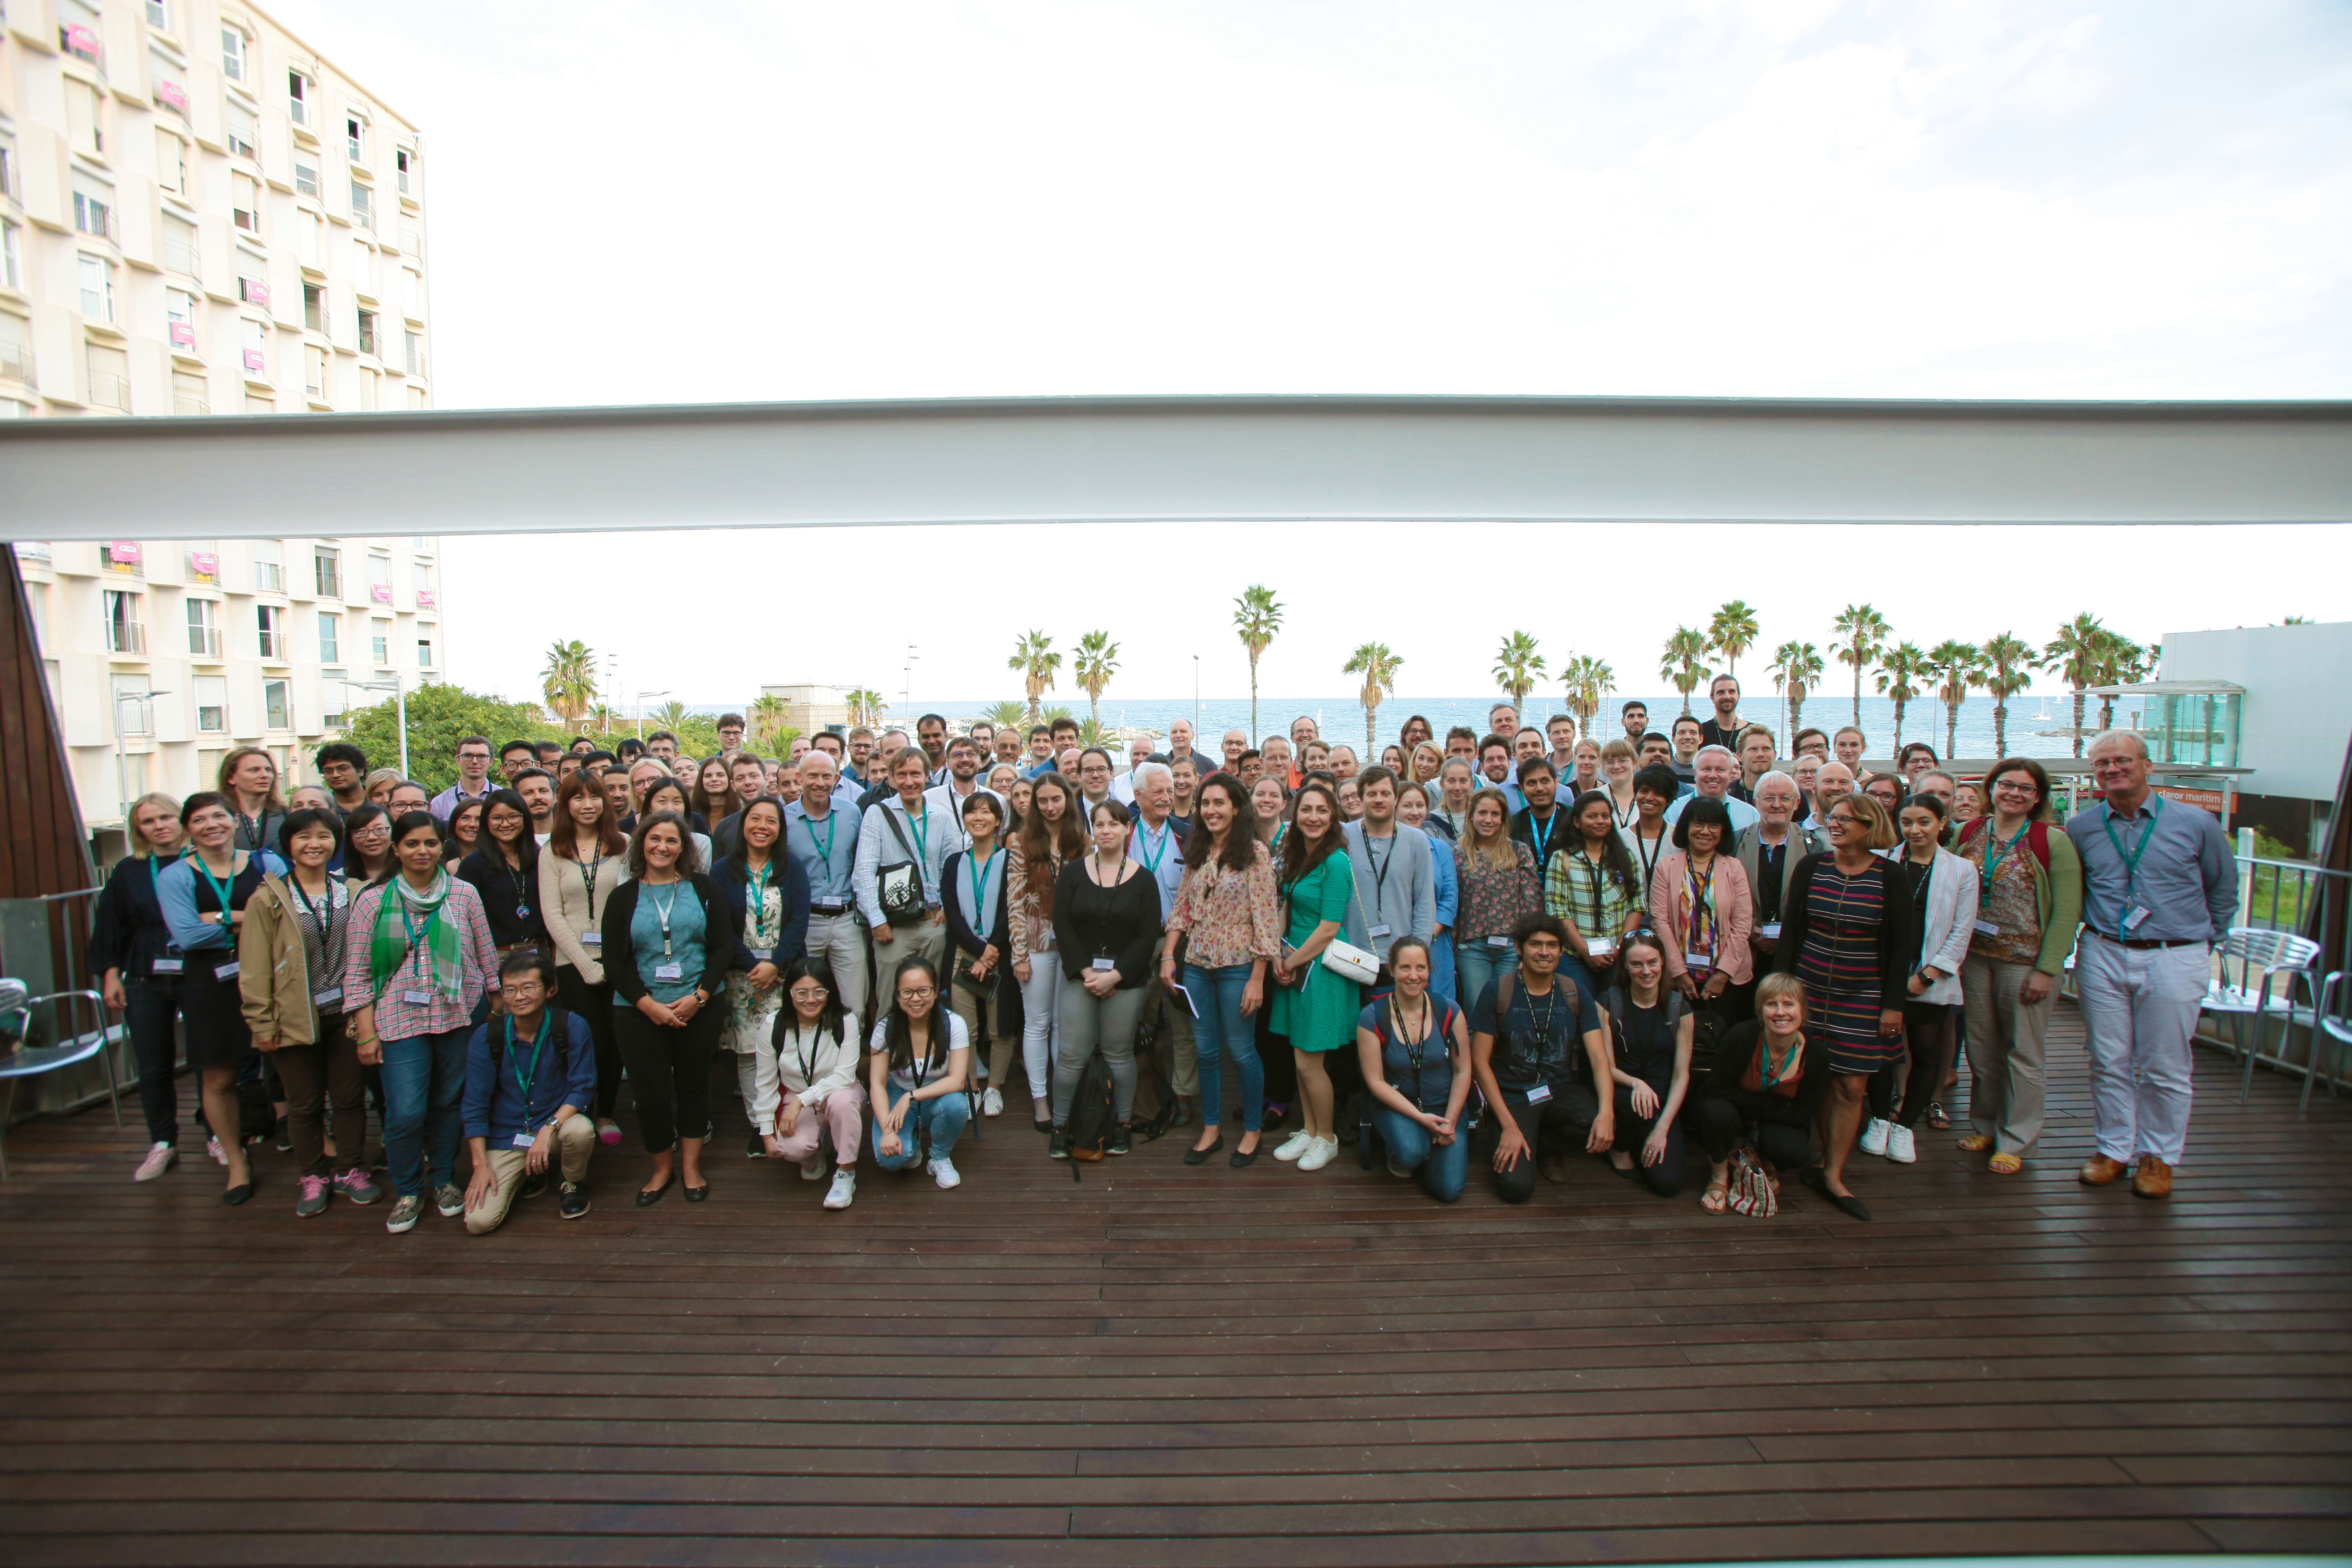 Group picture of all attendees at the EMBL meeting